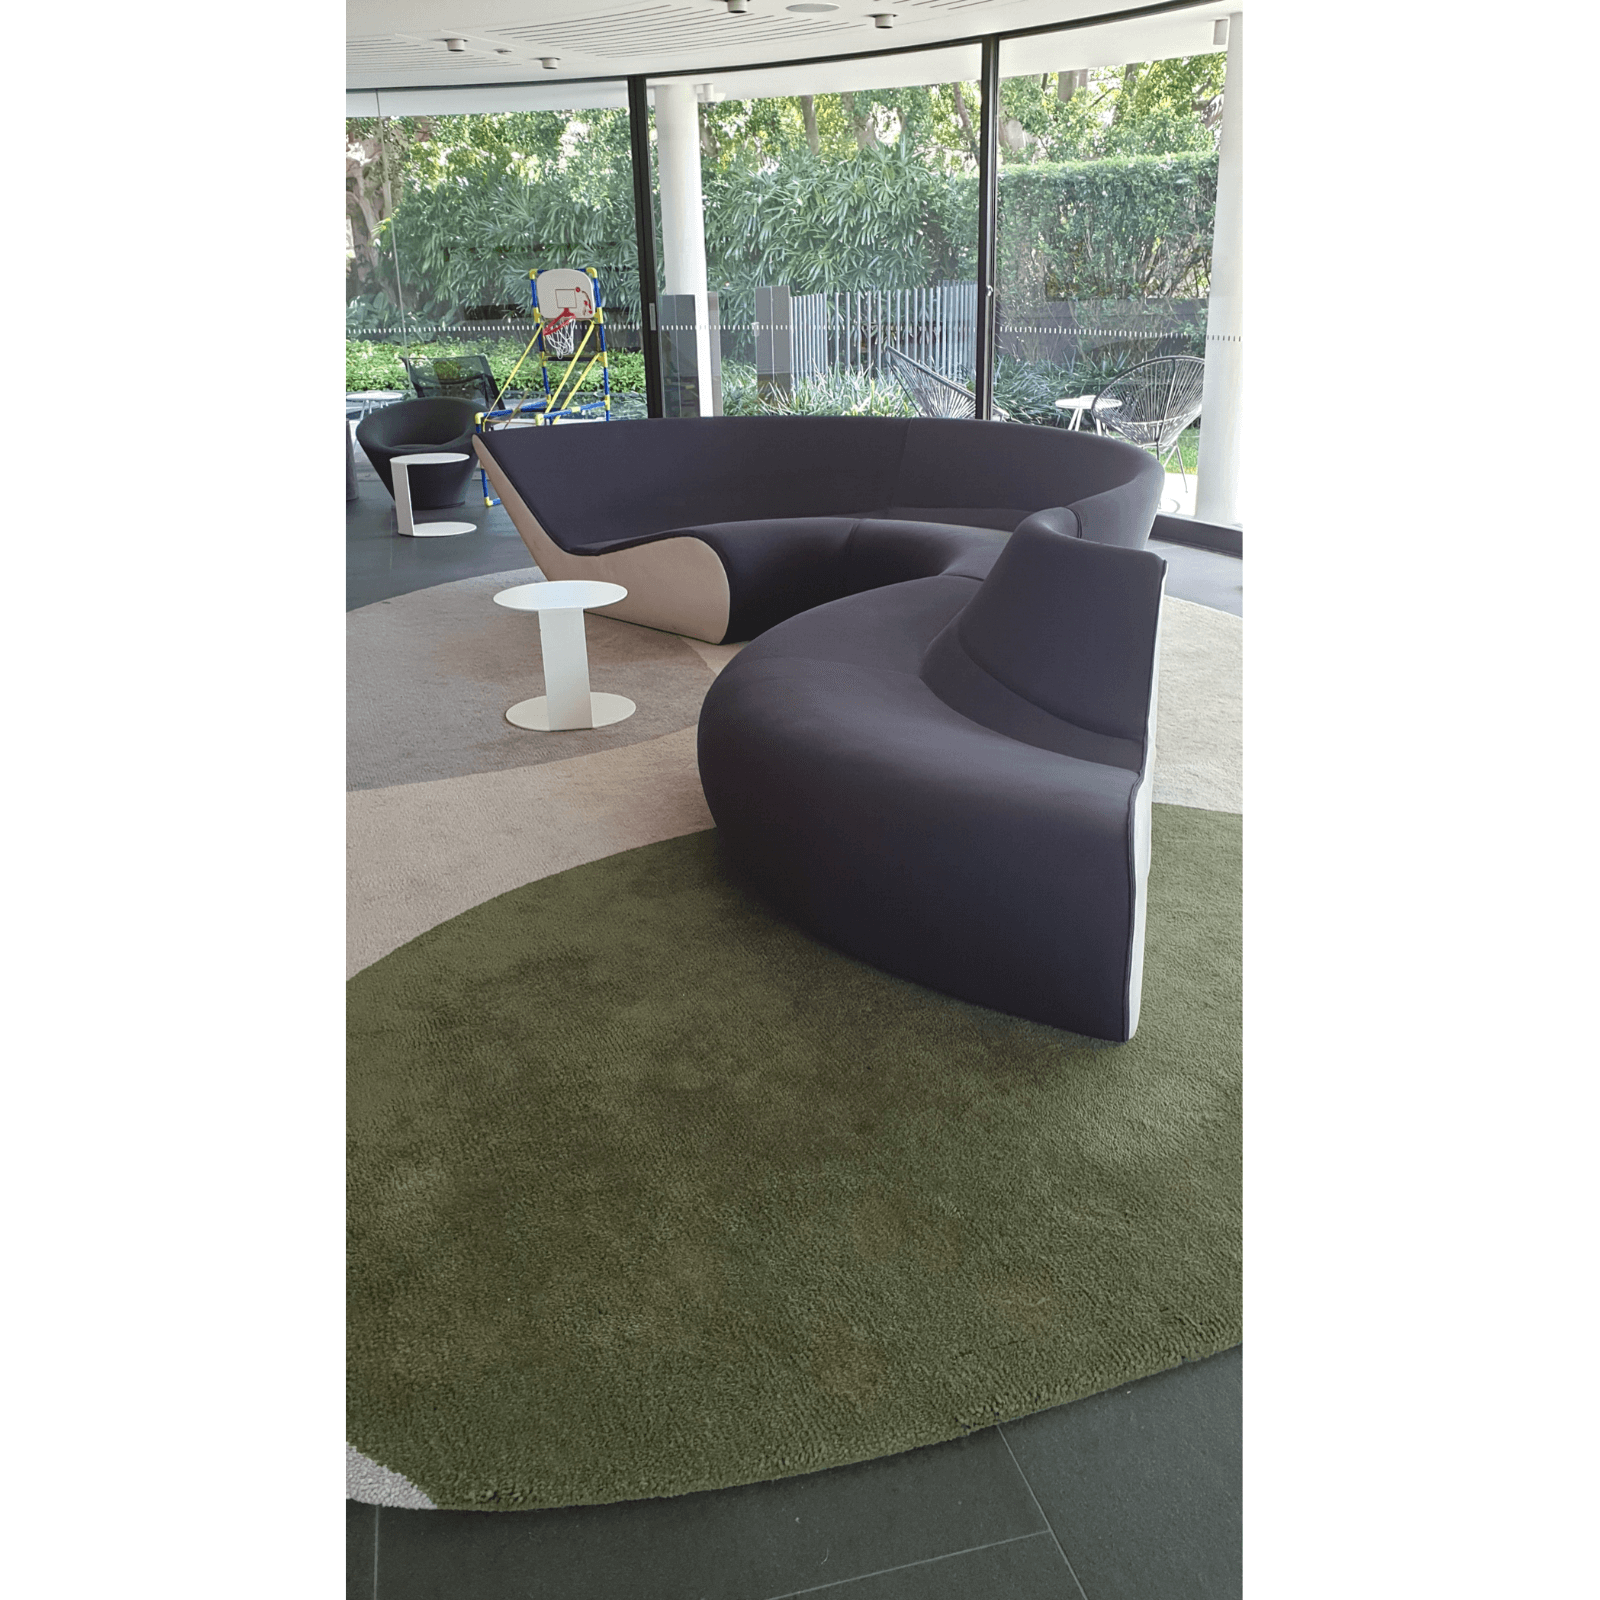 Walter Knoll Circle Sofa via Living Edge home